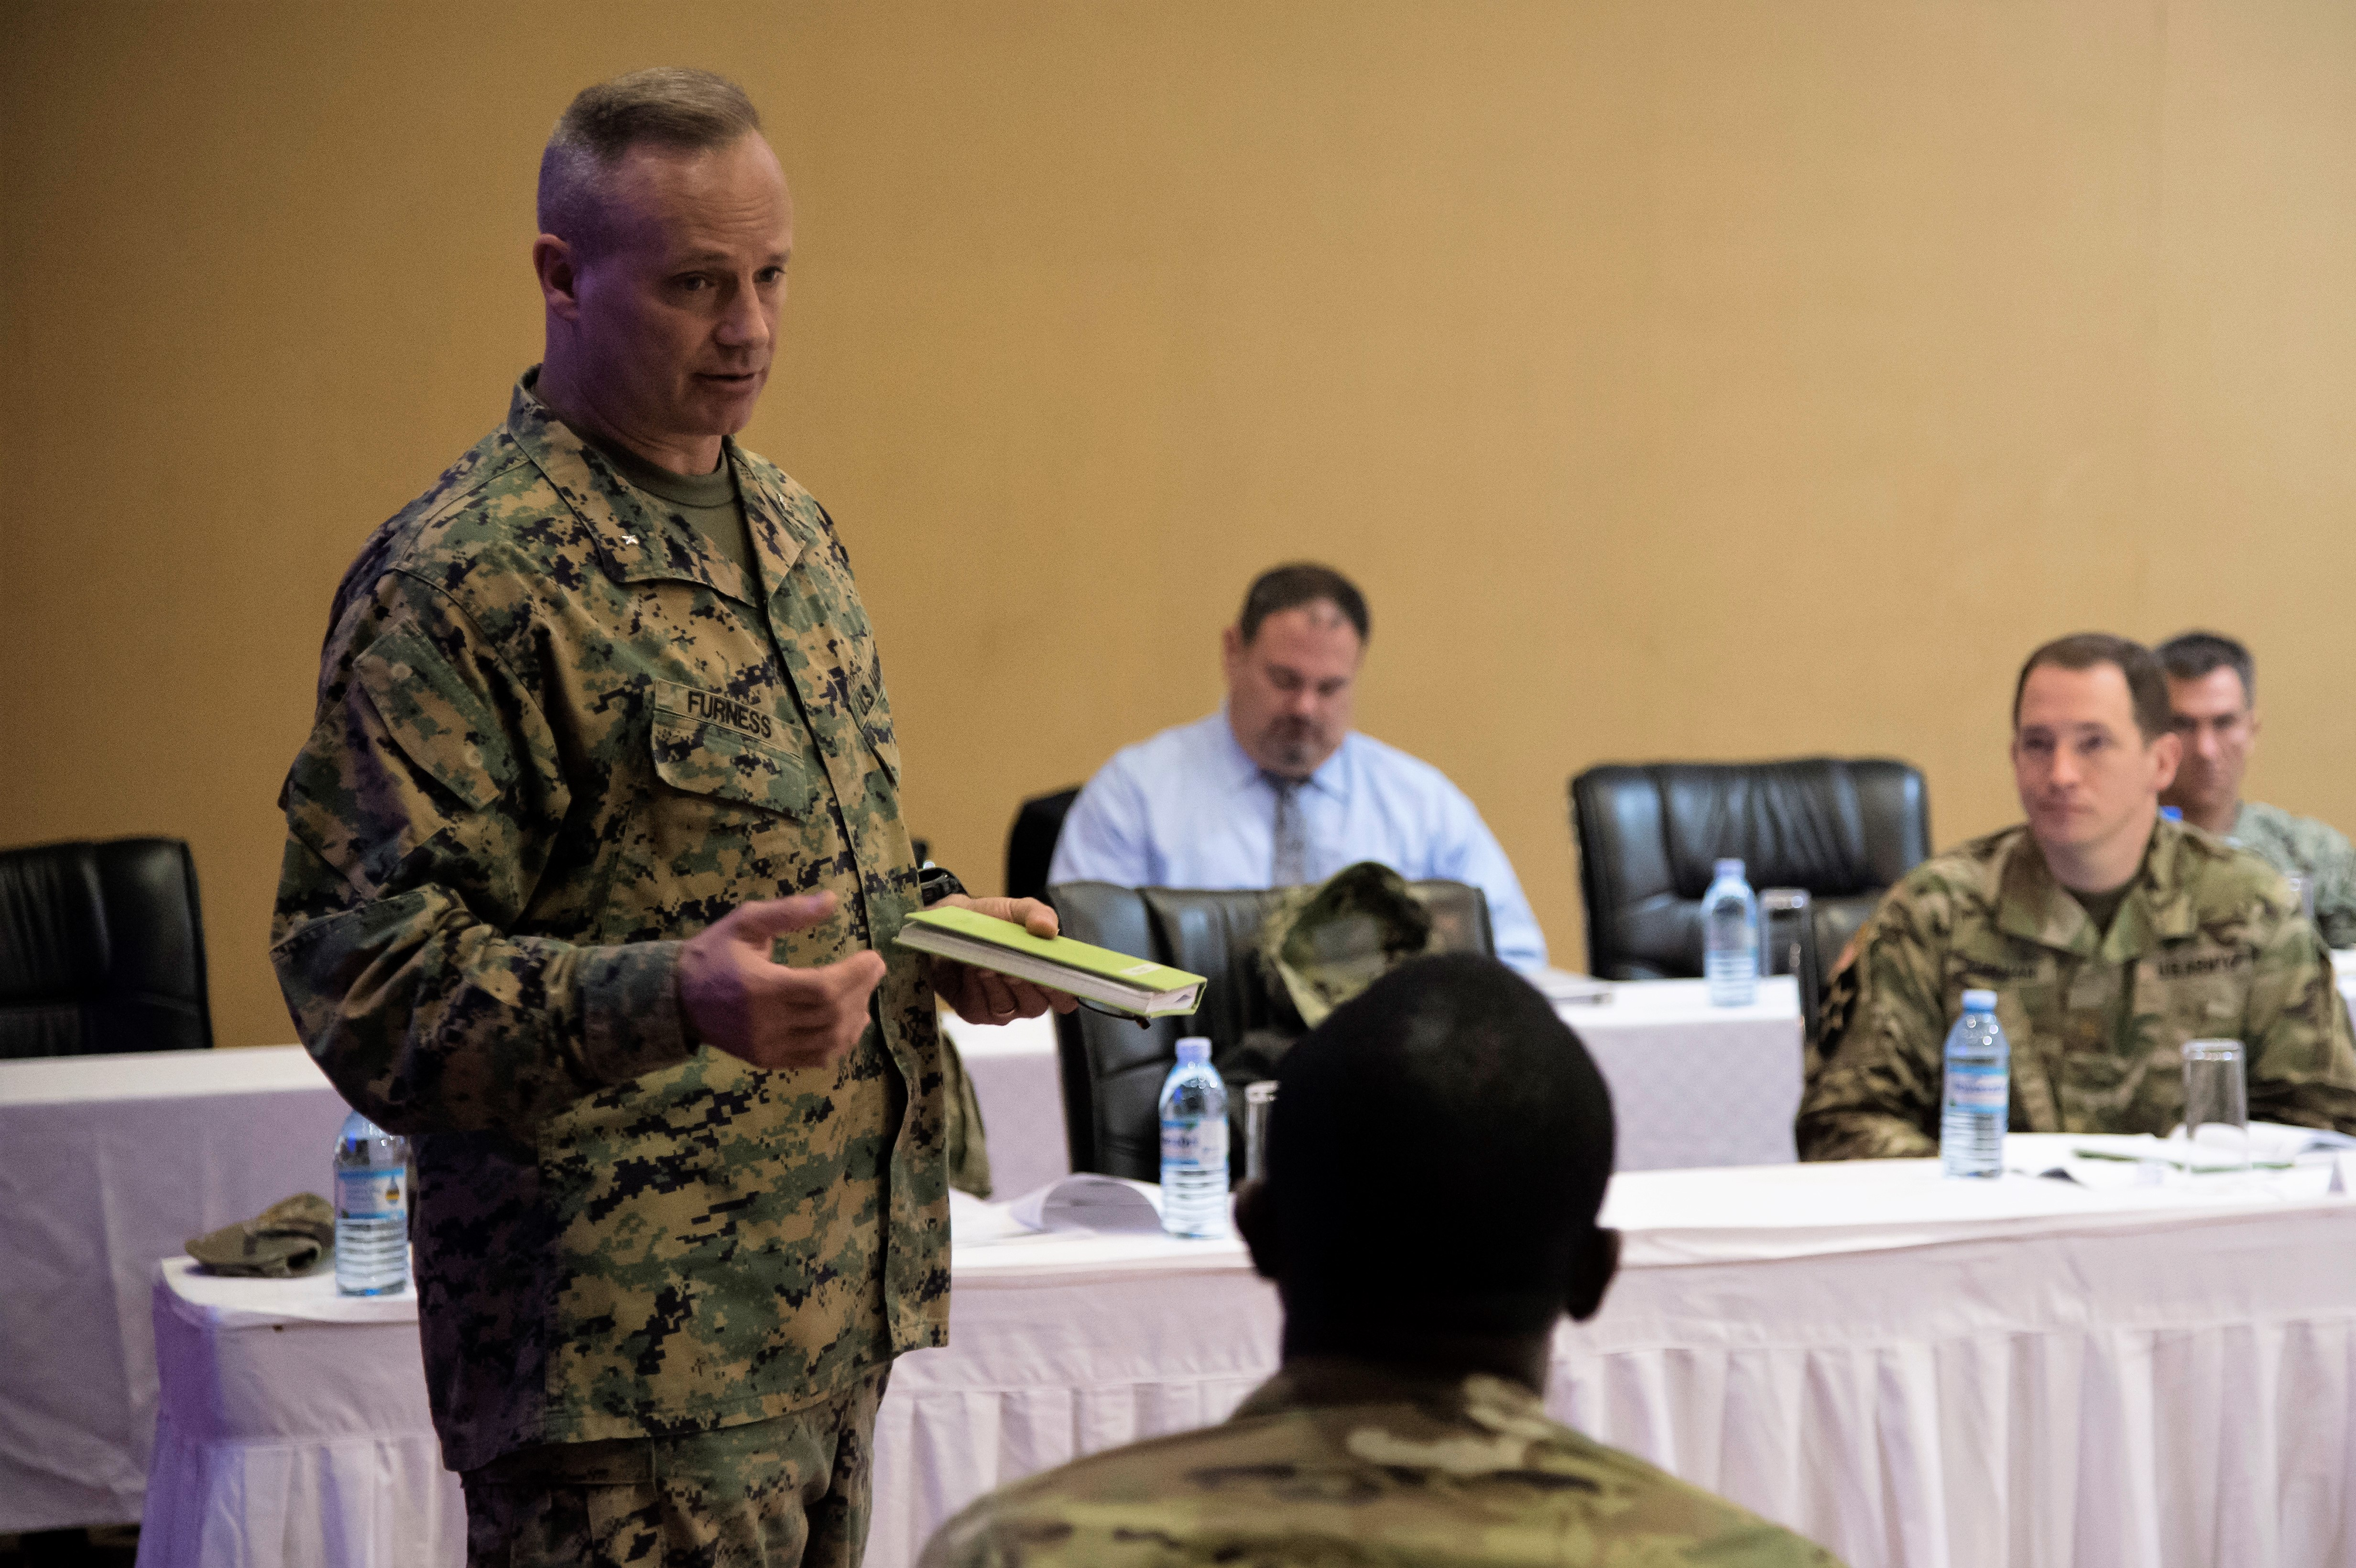 Combined Joint Task Force-Horn of Africa Commanding General, U.S. Marine Corps Brig. Gen. David Furness, speaks to attendees at the 2017 East African Senior Defense Official/Defense Attaché Conference in Kampala, Uganda, to discuss regional issues of East Africa and address threat mitigation options to counter improvised explosive devices, Oct. 17, 2017. Subject matter experts from a variety of government agencies discussed military partnership opportunities to enhance security and stability throughout East Africa. (U.S. Air National Guard photo by Tech. Sgt. Joe Harwood)